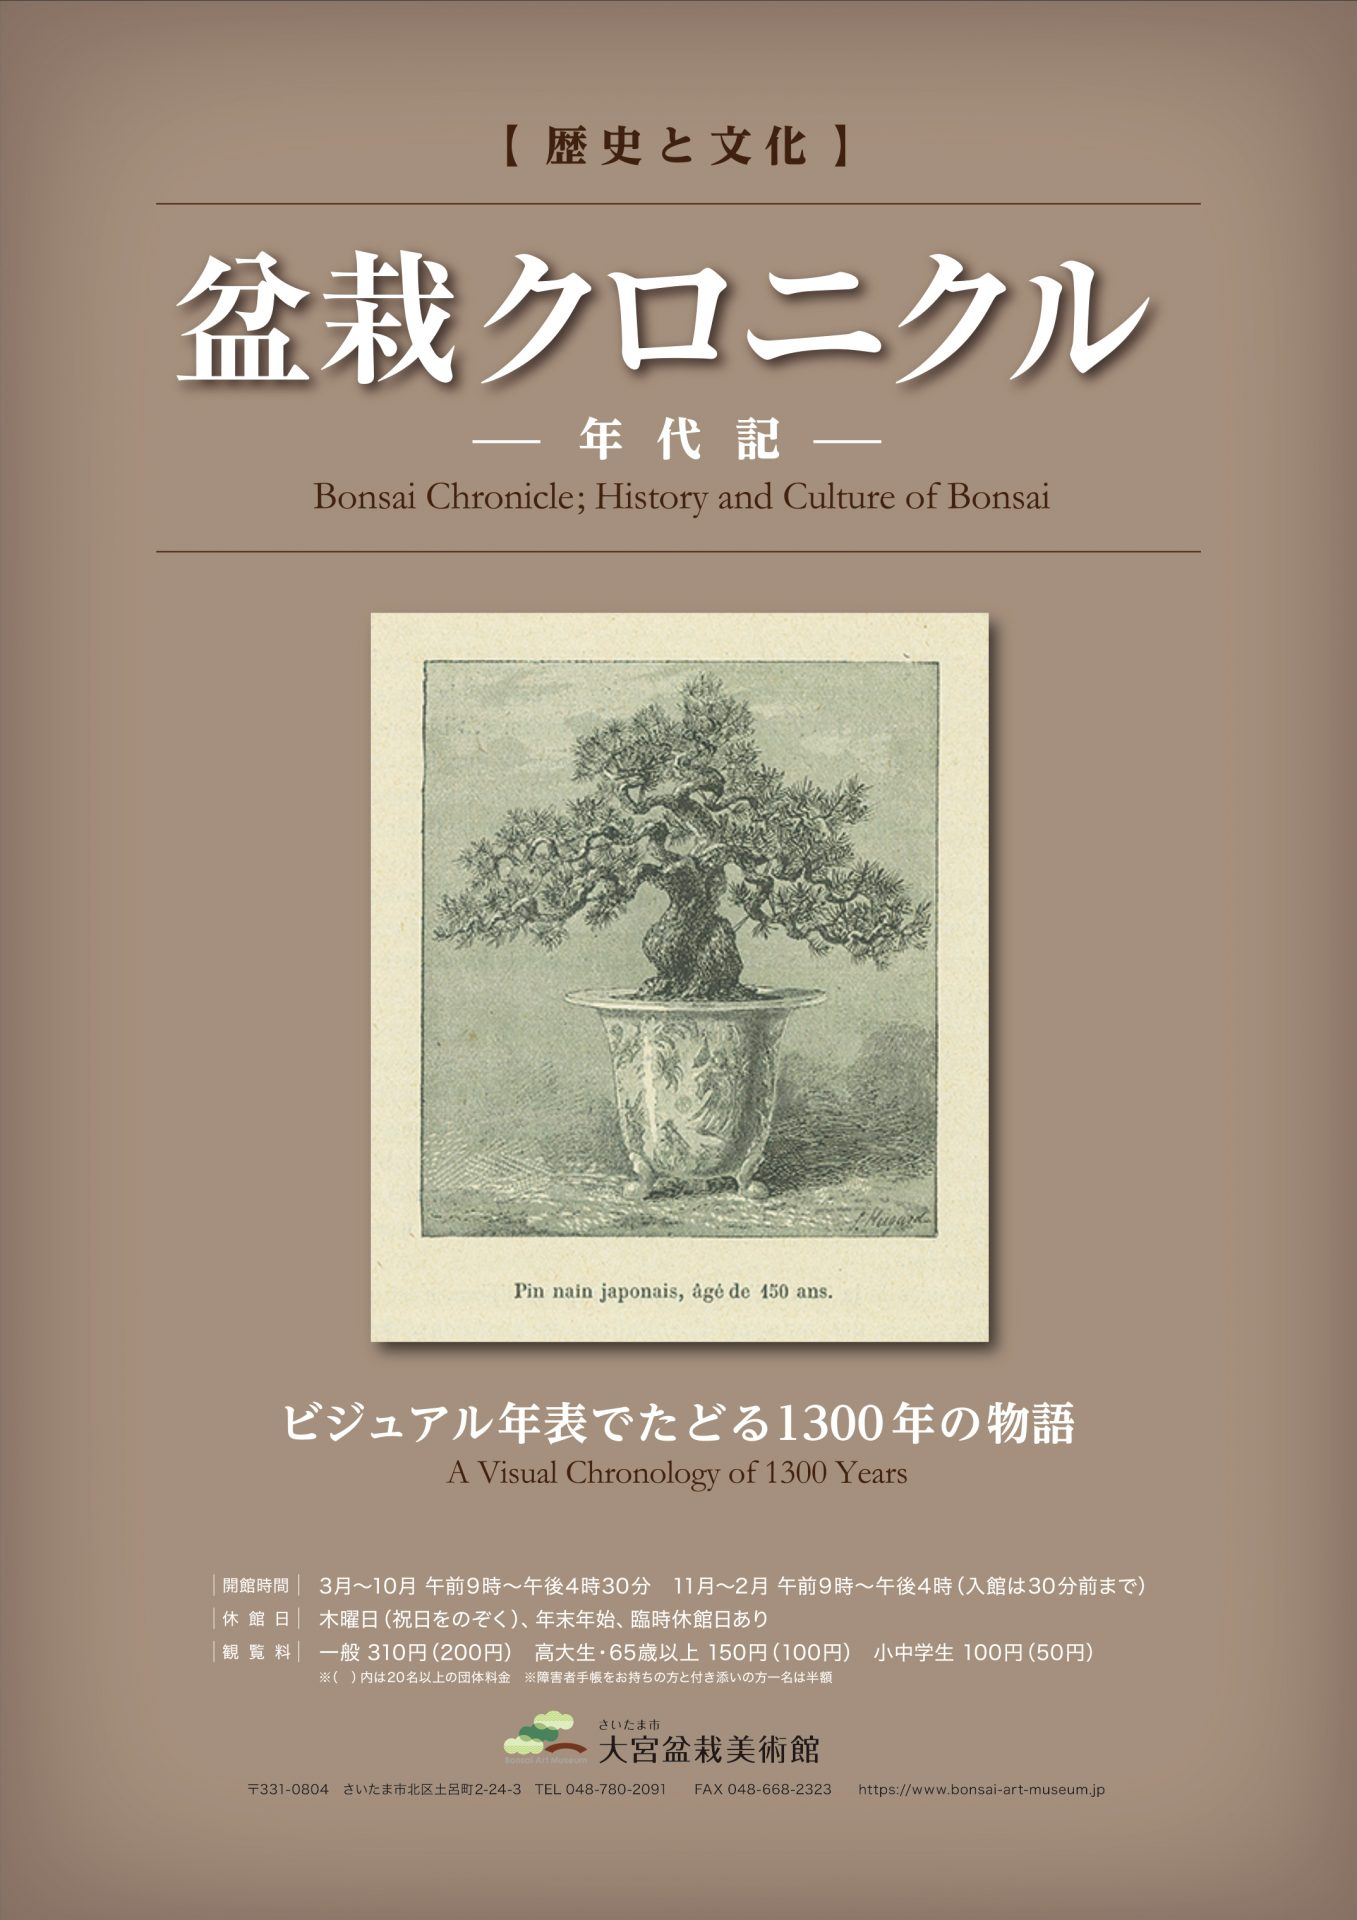 Bonsai Chronicle; History and Culture of Bonsai